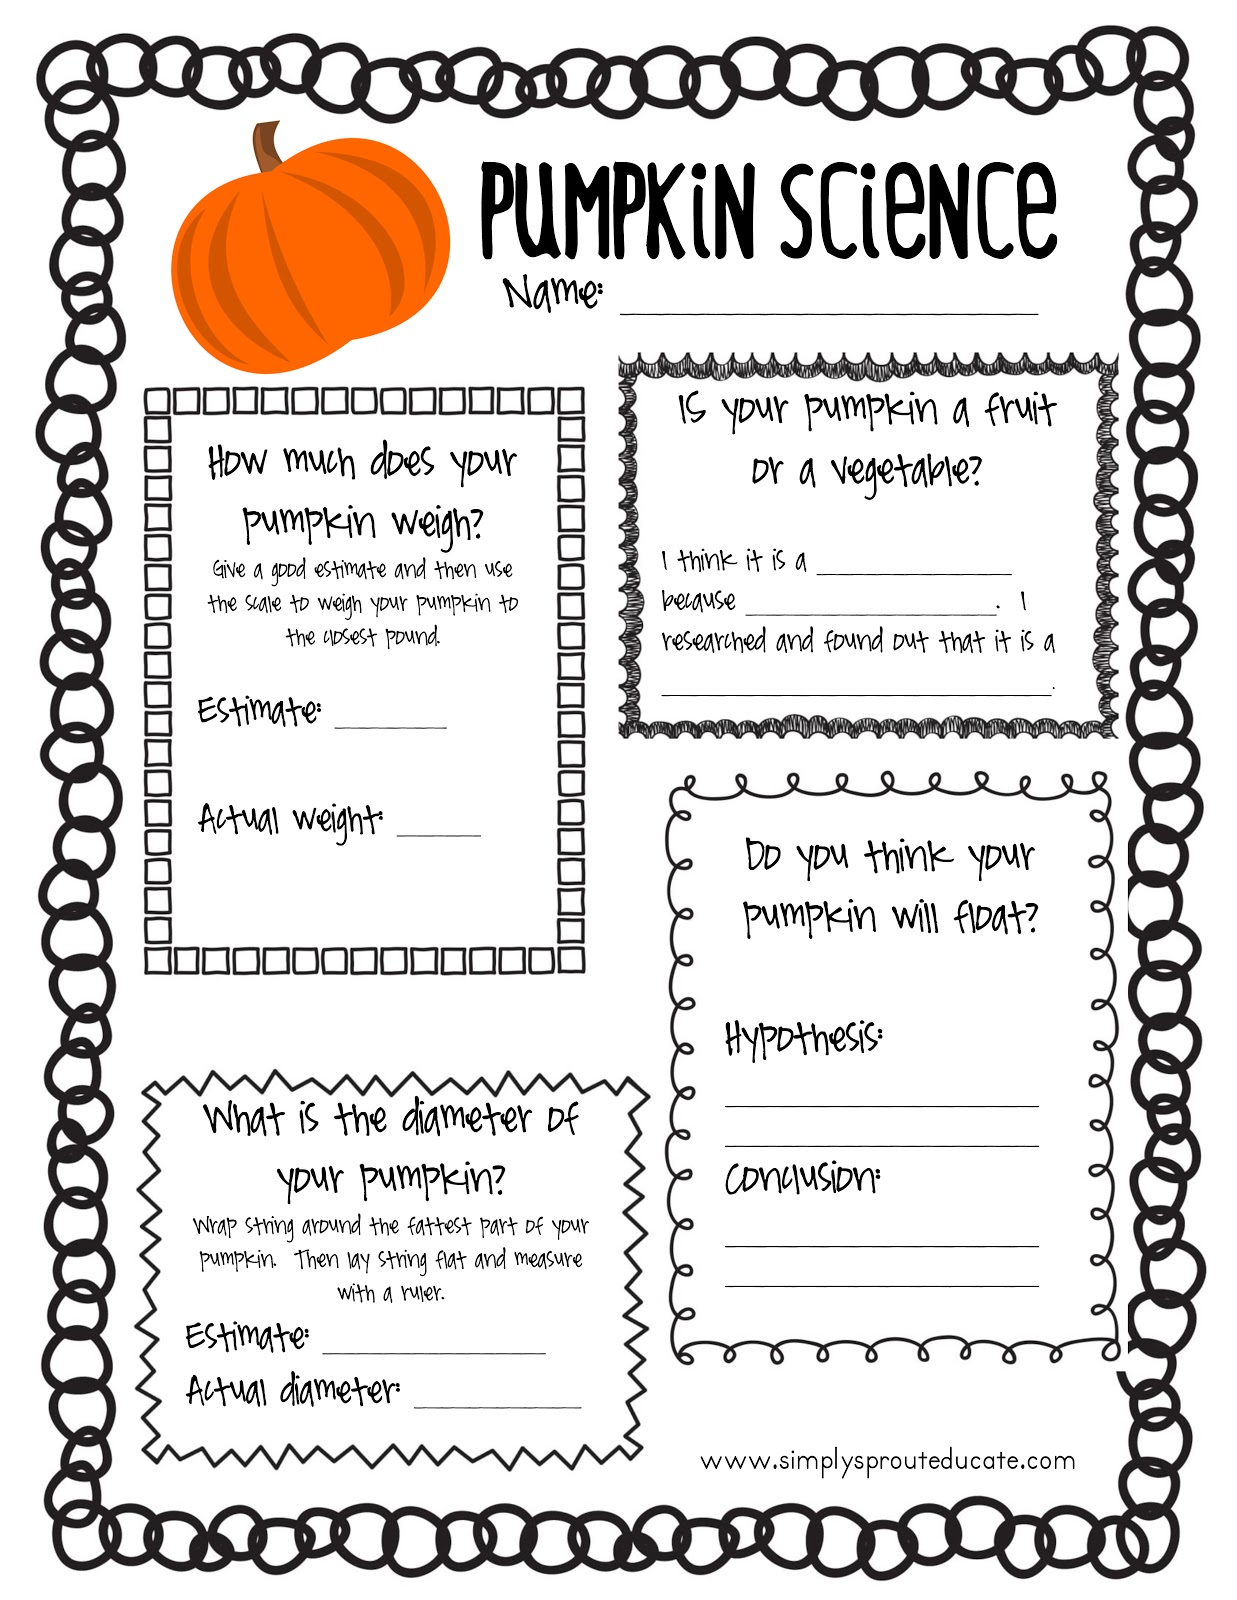 science pumpkin printable fun halloween grade activities activity 1st pumpkins lessons preschool classroom experiment experiments math elementary sprout simply teaching